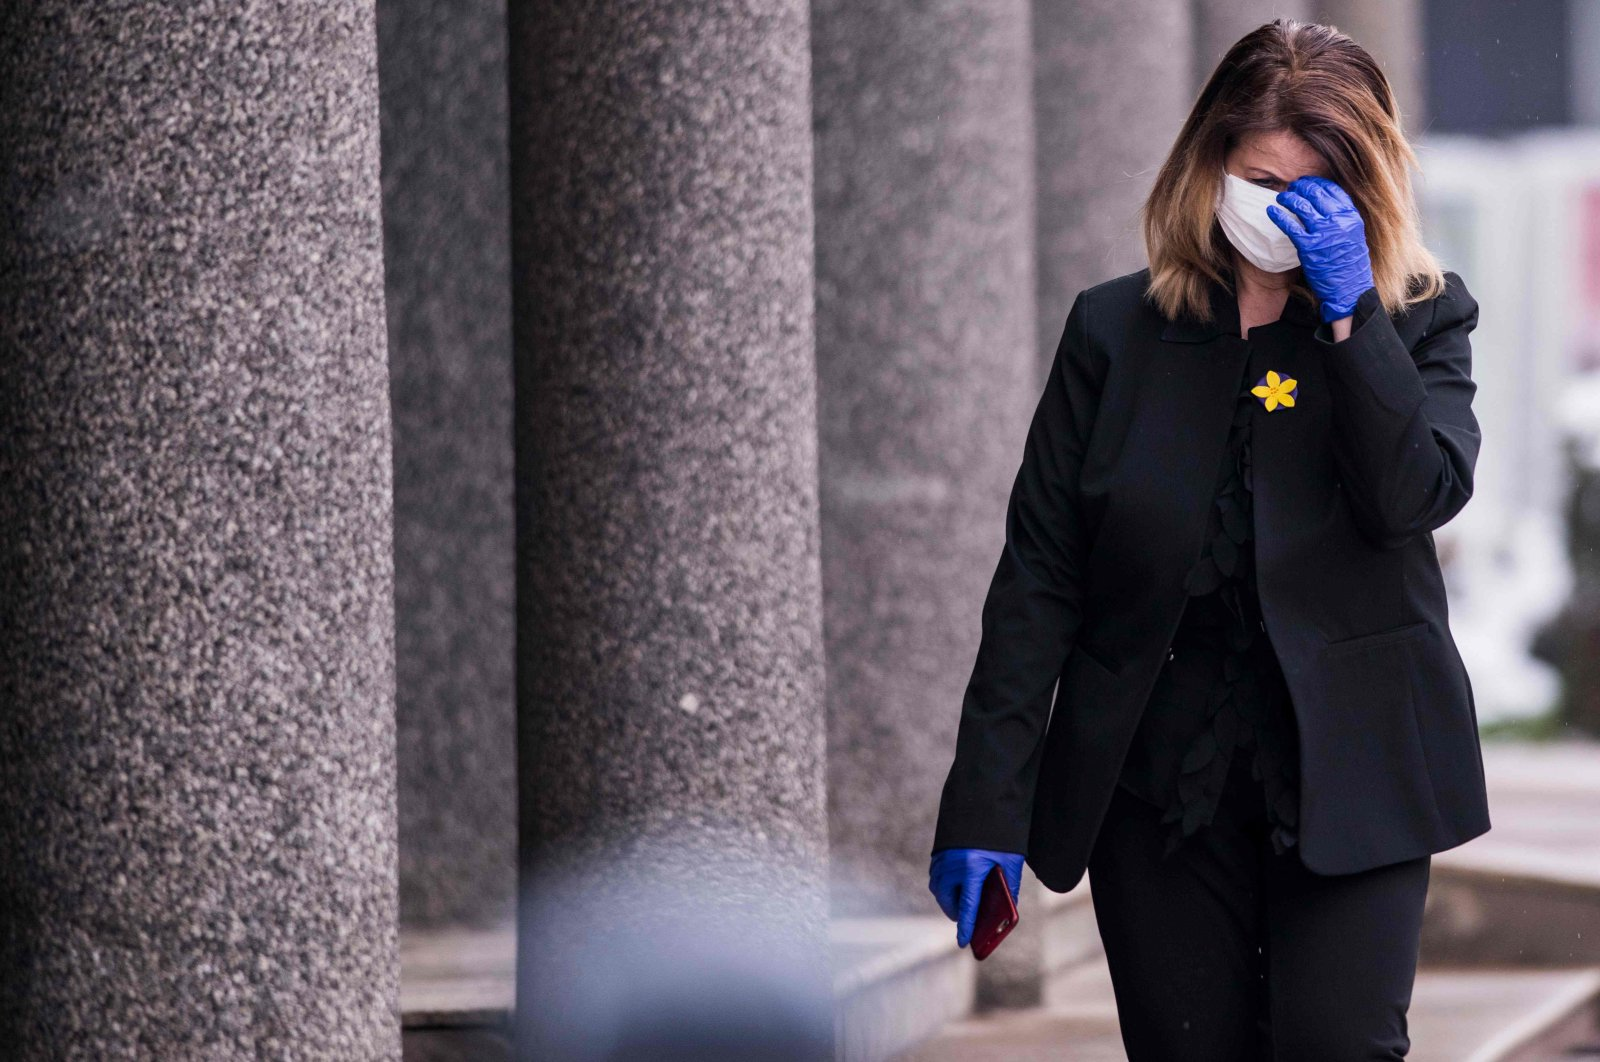 A lawmaker wearing protective mask and gloves arrives for an extraordinary session at the Kosovo Parliament in Pristina on March 25, 2020 (AFP Photo)